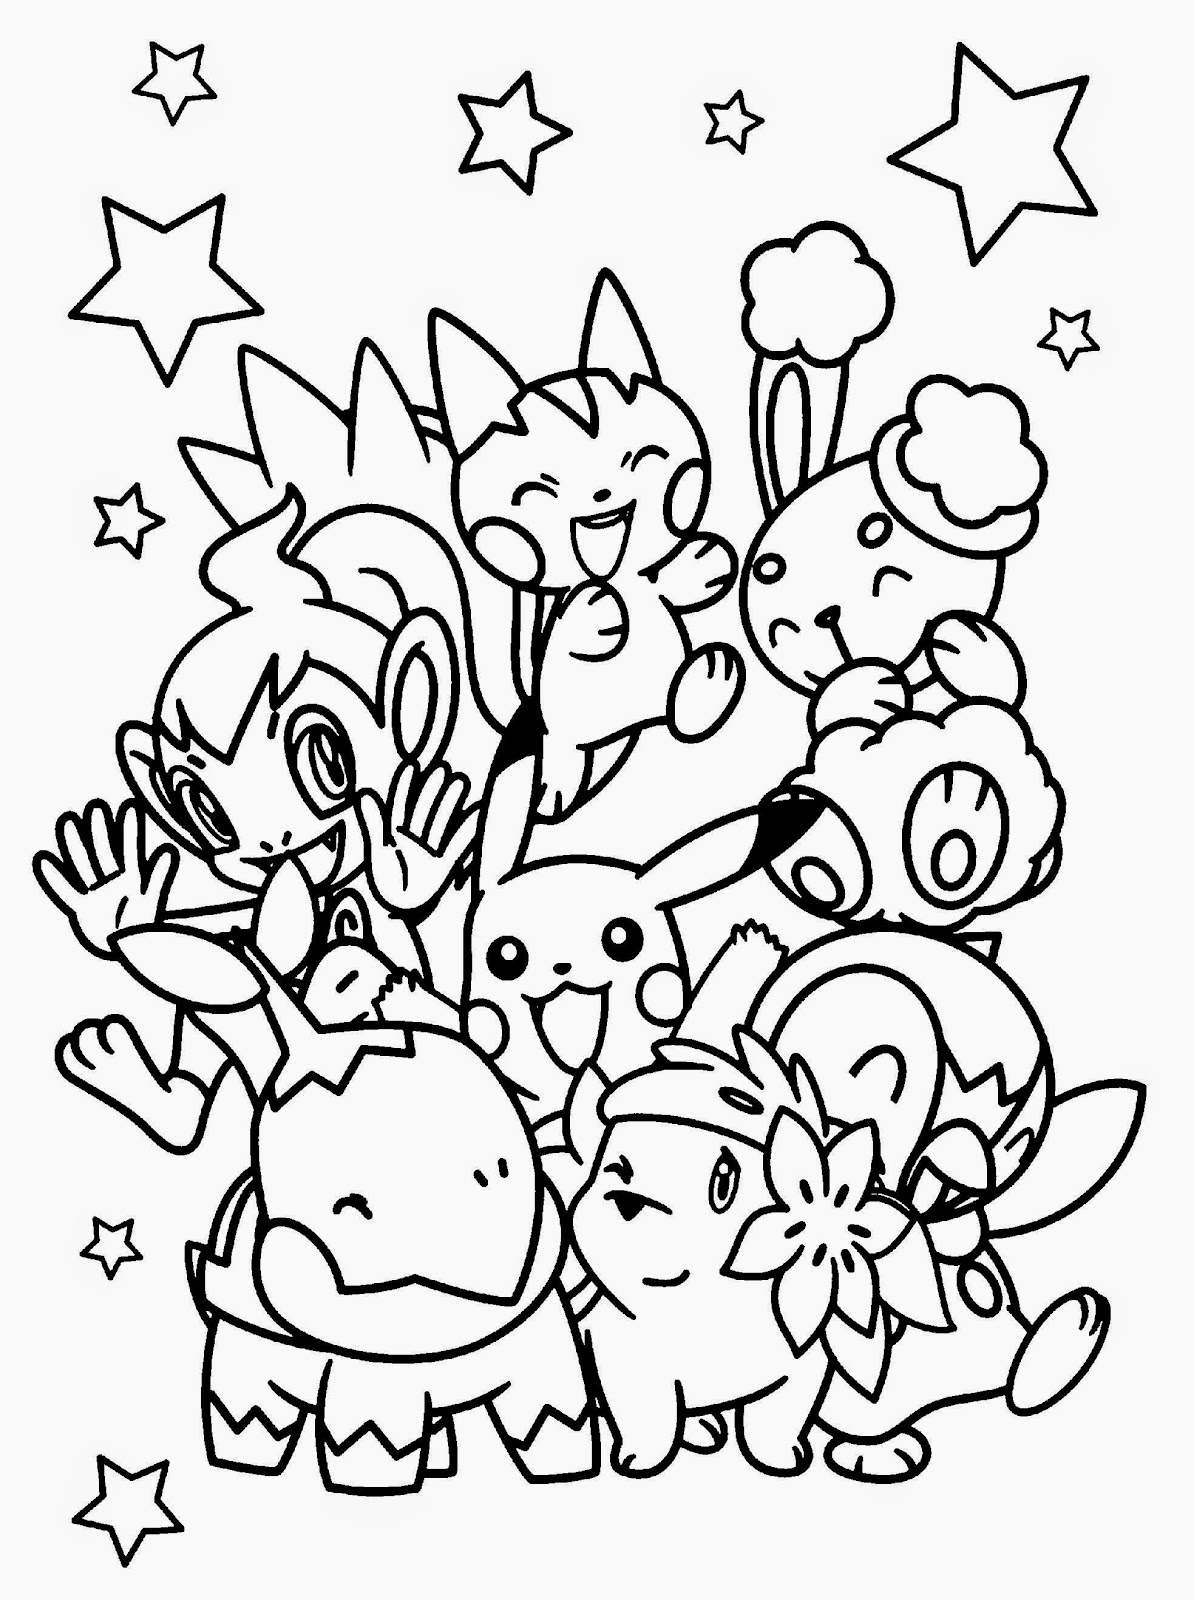 free coloring pages printable - pokemon coloring sheet free coloring sheet